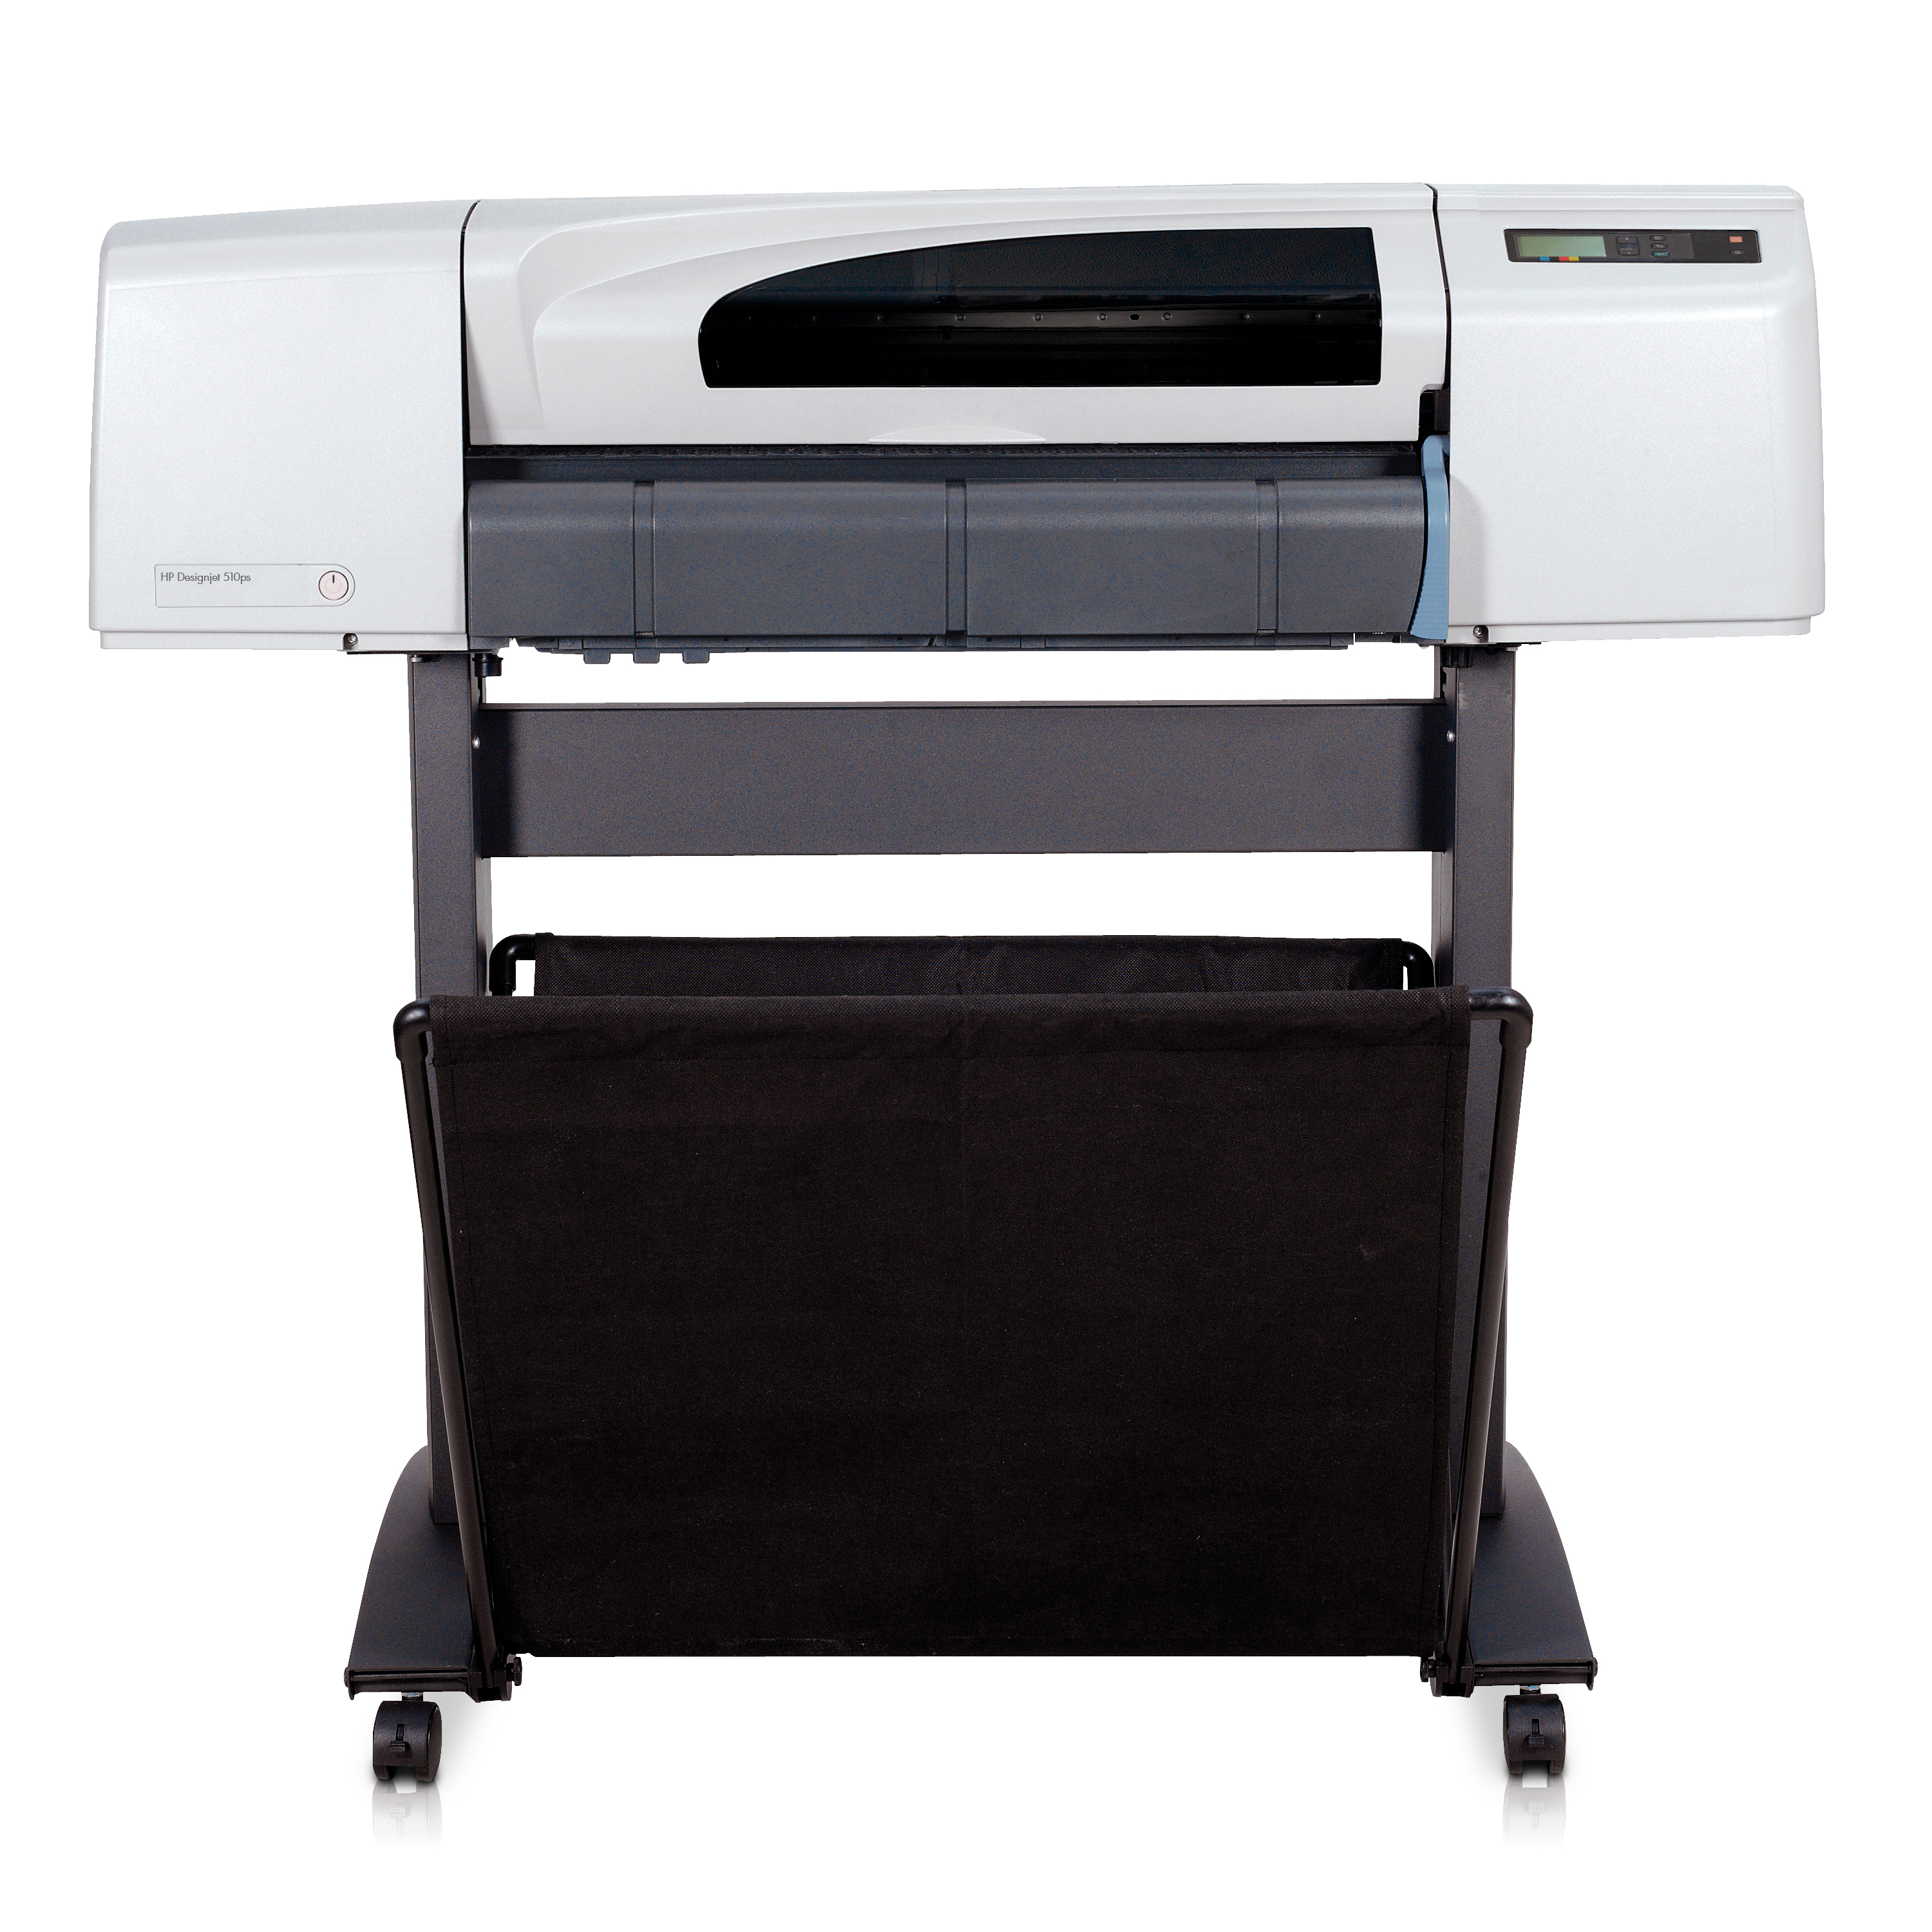 "HP Designjet 510 A0 (42"") Wide Format Colour Inkjet Printer CH337A - Refurbished"